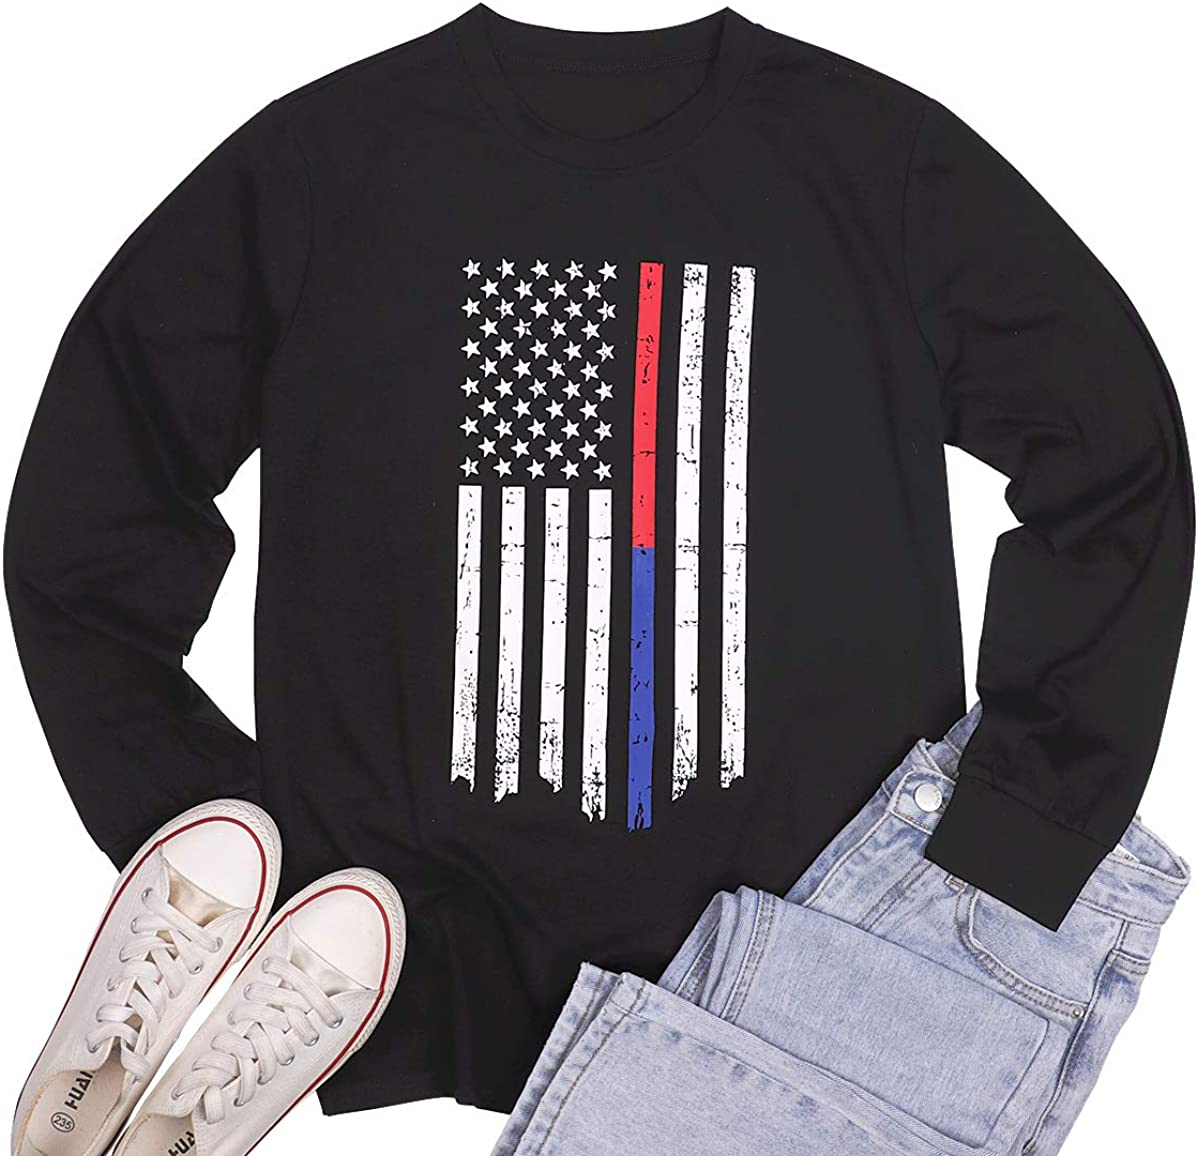 MOUSYA Women American Flag Shirt Vintage Stars Stripes Patriotic Tee Shirt USA Flag Graphic Long Sleeve Round Neck Tops